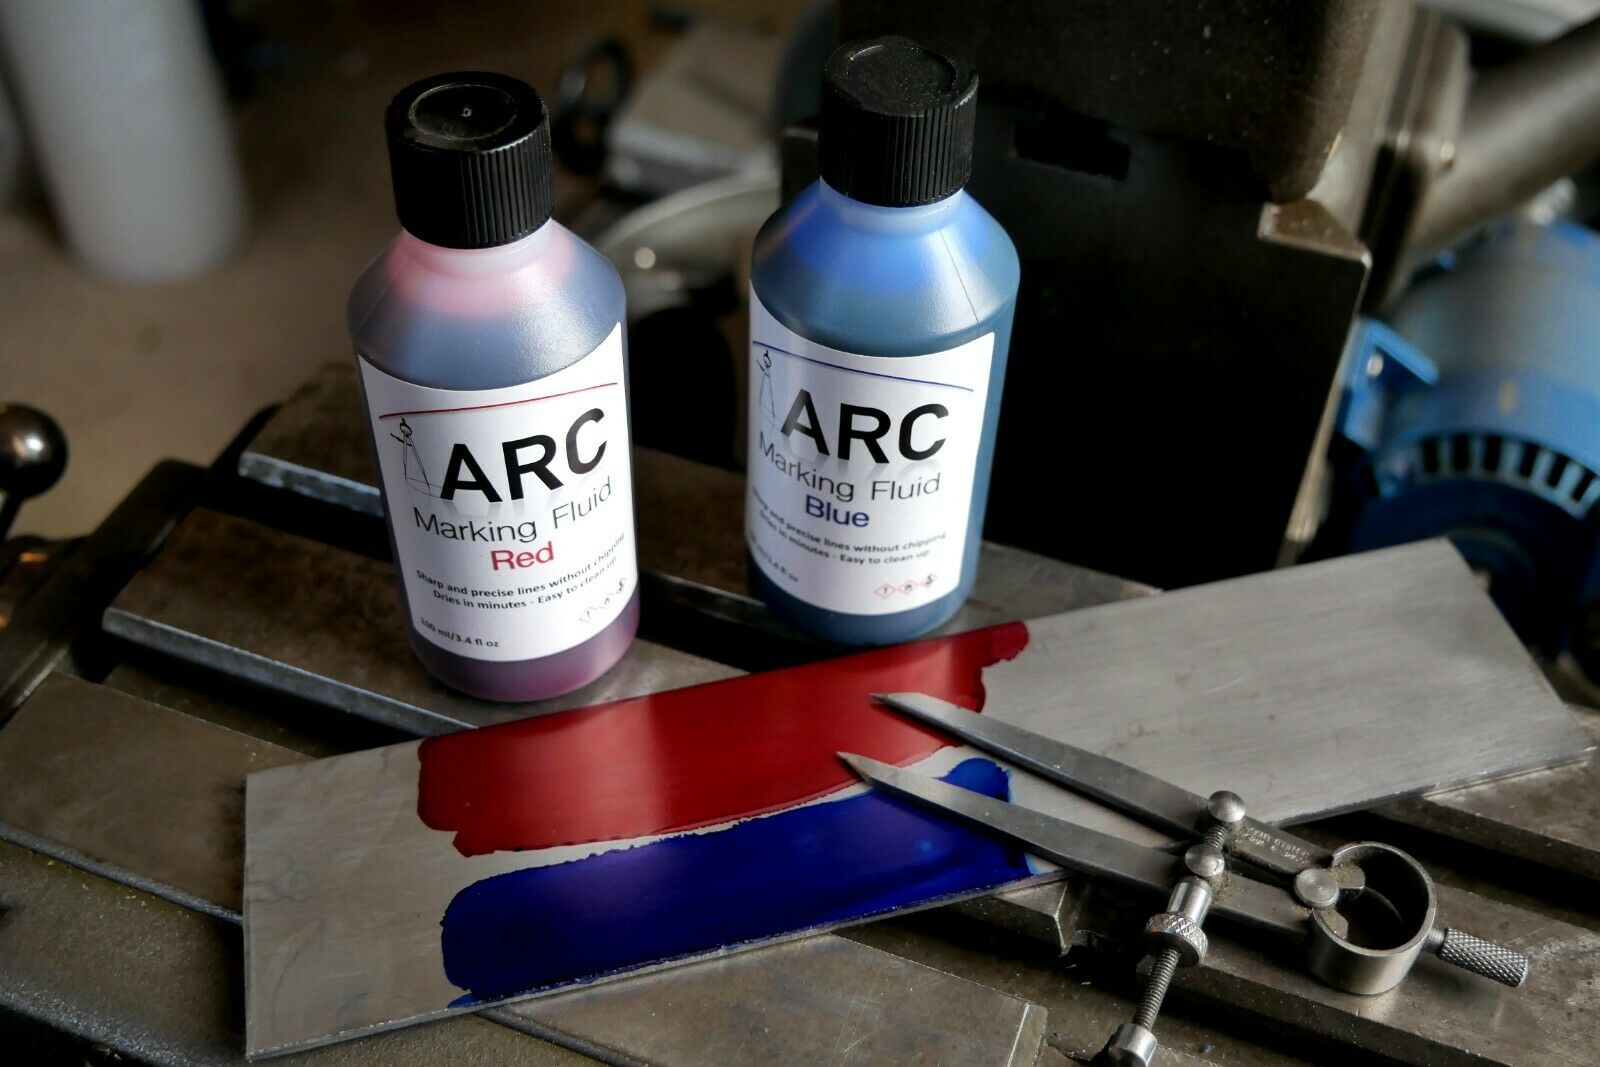 ARC Engineer's Marking/Layout Fluid Red and Blue available. 100ml with brush cap